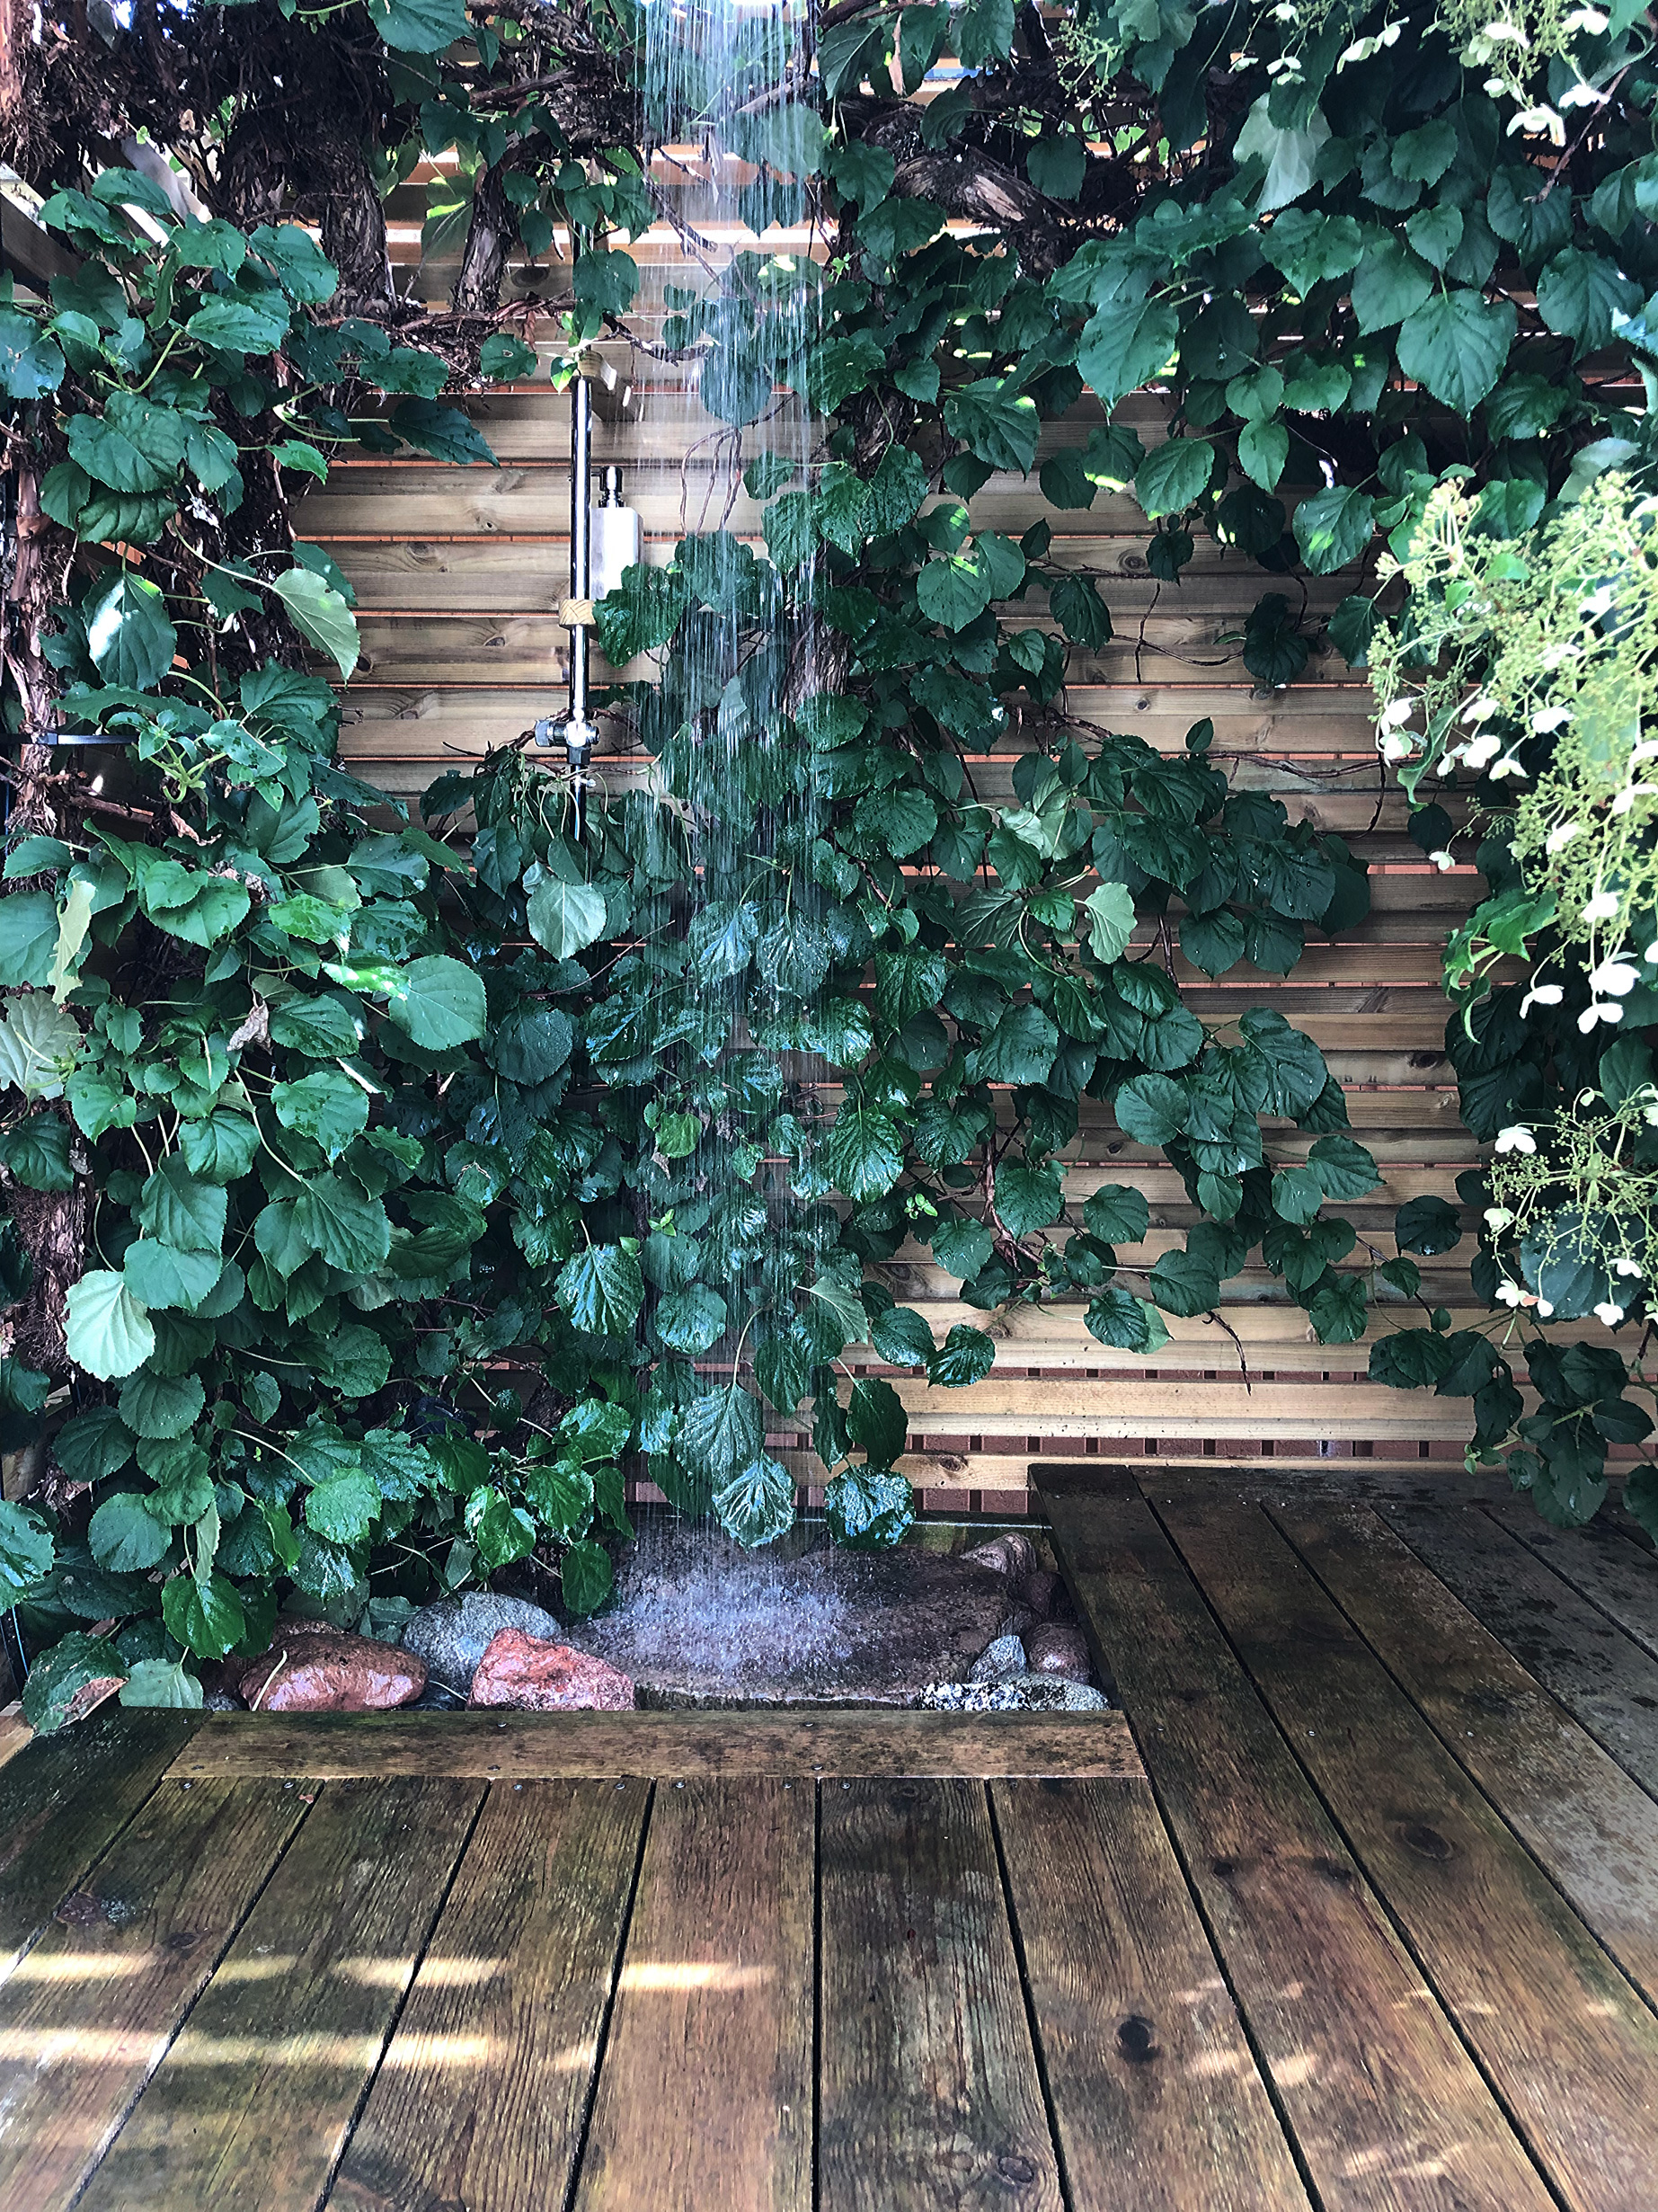 Utedusch ger mig en väldigt lyxig känsla av att vara så nära naturen. Så glad att vi kunde integrera den i hörnan med nya trädgårdsdörren och staketet. Outdoor shower gives me such a luxury feeling, staying close to nature. I'm so happy we could get this little nook in the corner of our new outdoor space.